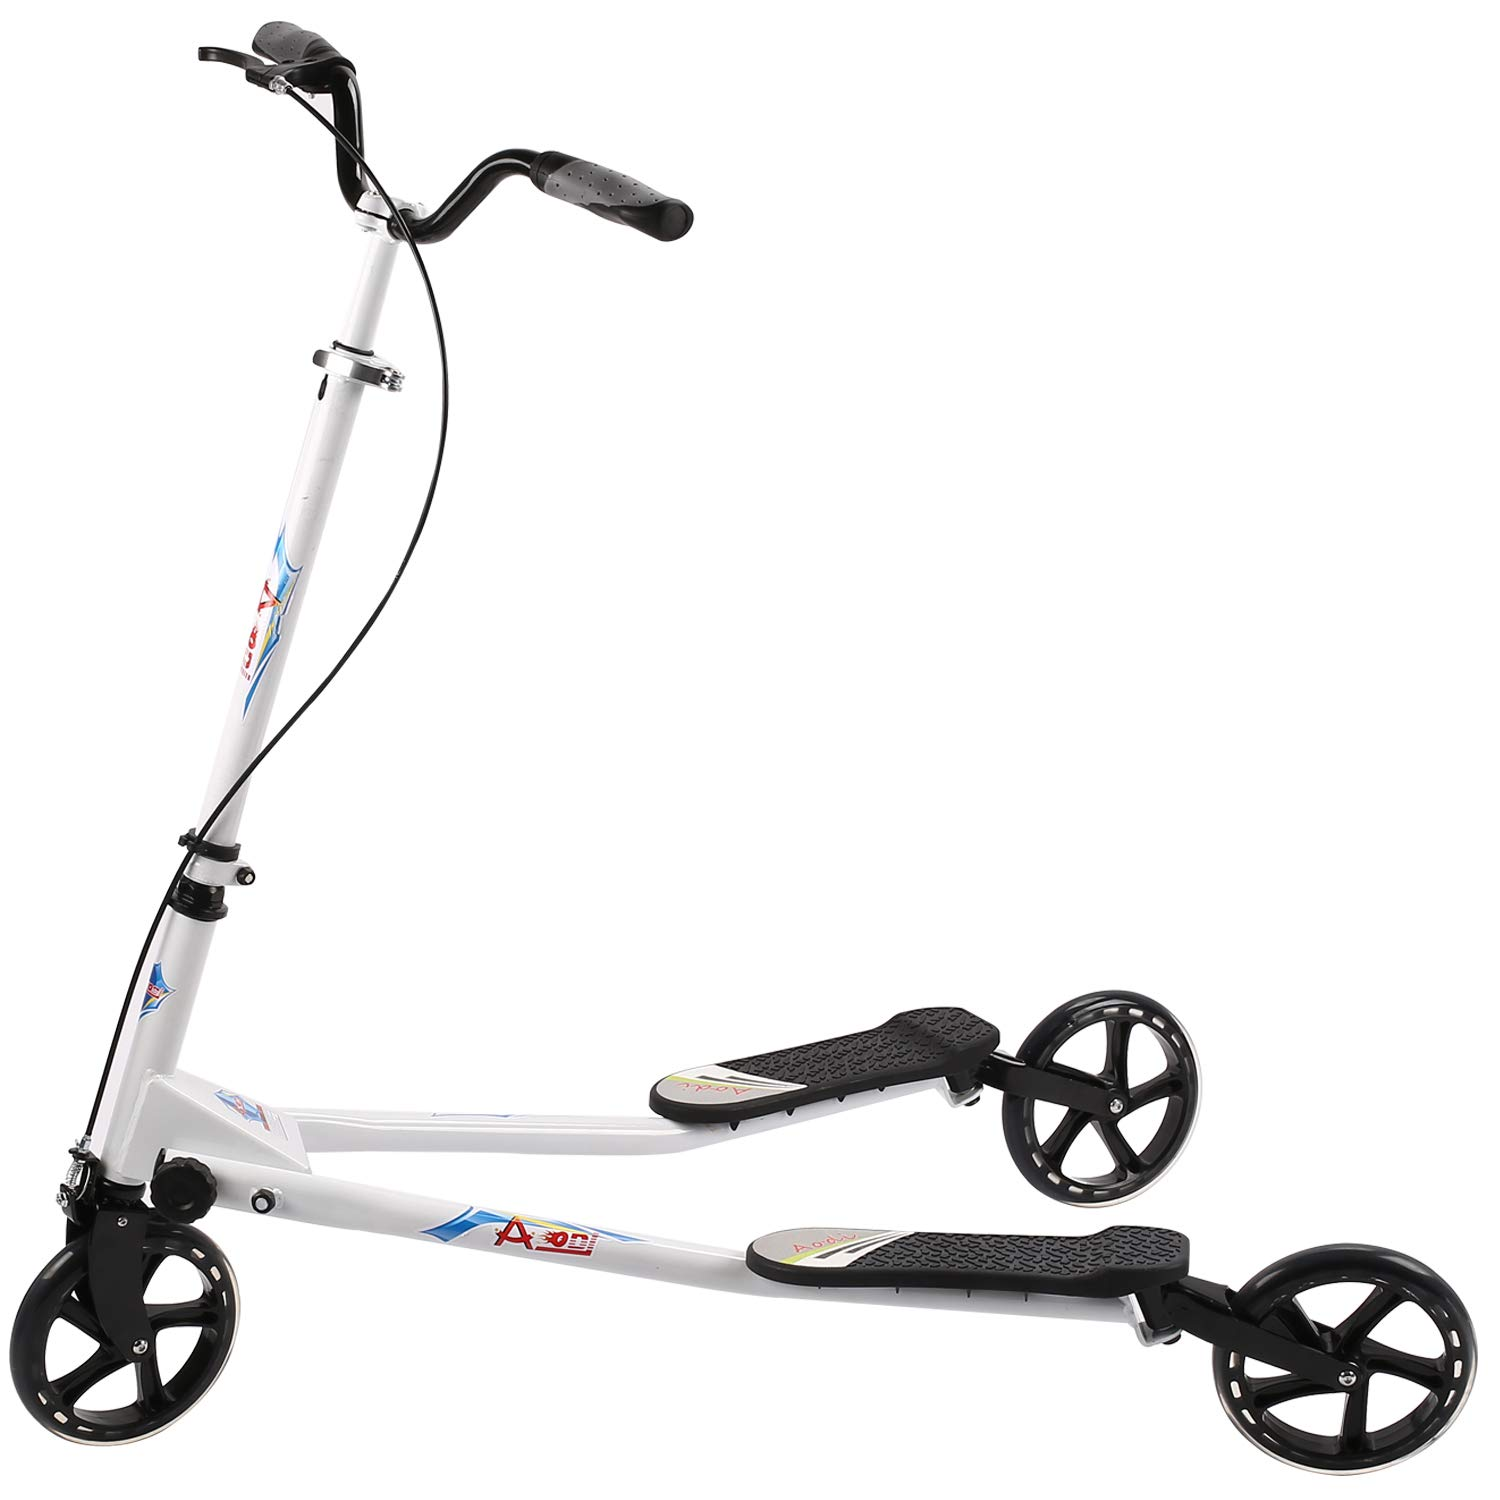 AODI 3 Wheeled Scooter - Height Adjustable Push Swing Wiggle Scooters with Drifting Self Propelling for Boys/Girl/Adult Age 8 Years Old and Up by AODI